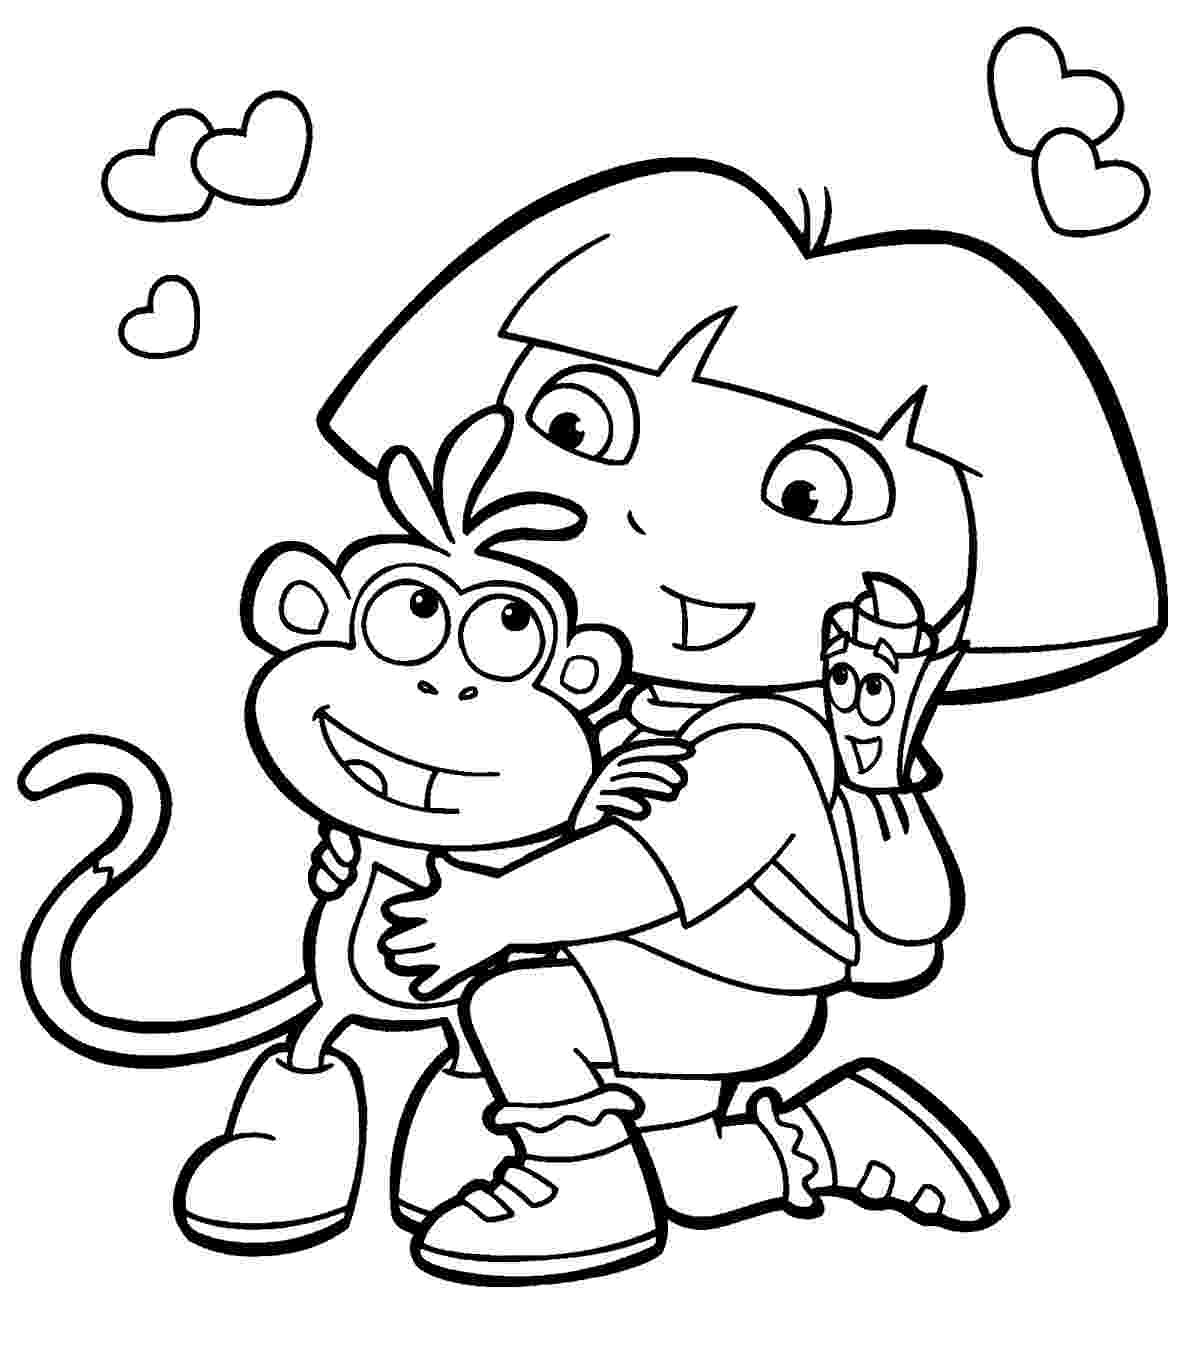 dora the explorer printables dora coloring pages explorer printables the dora